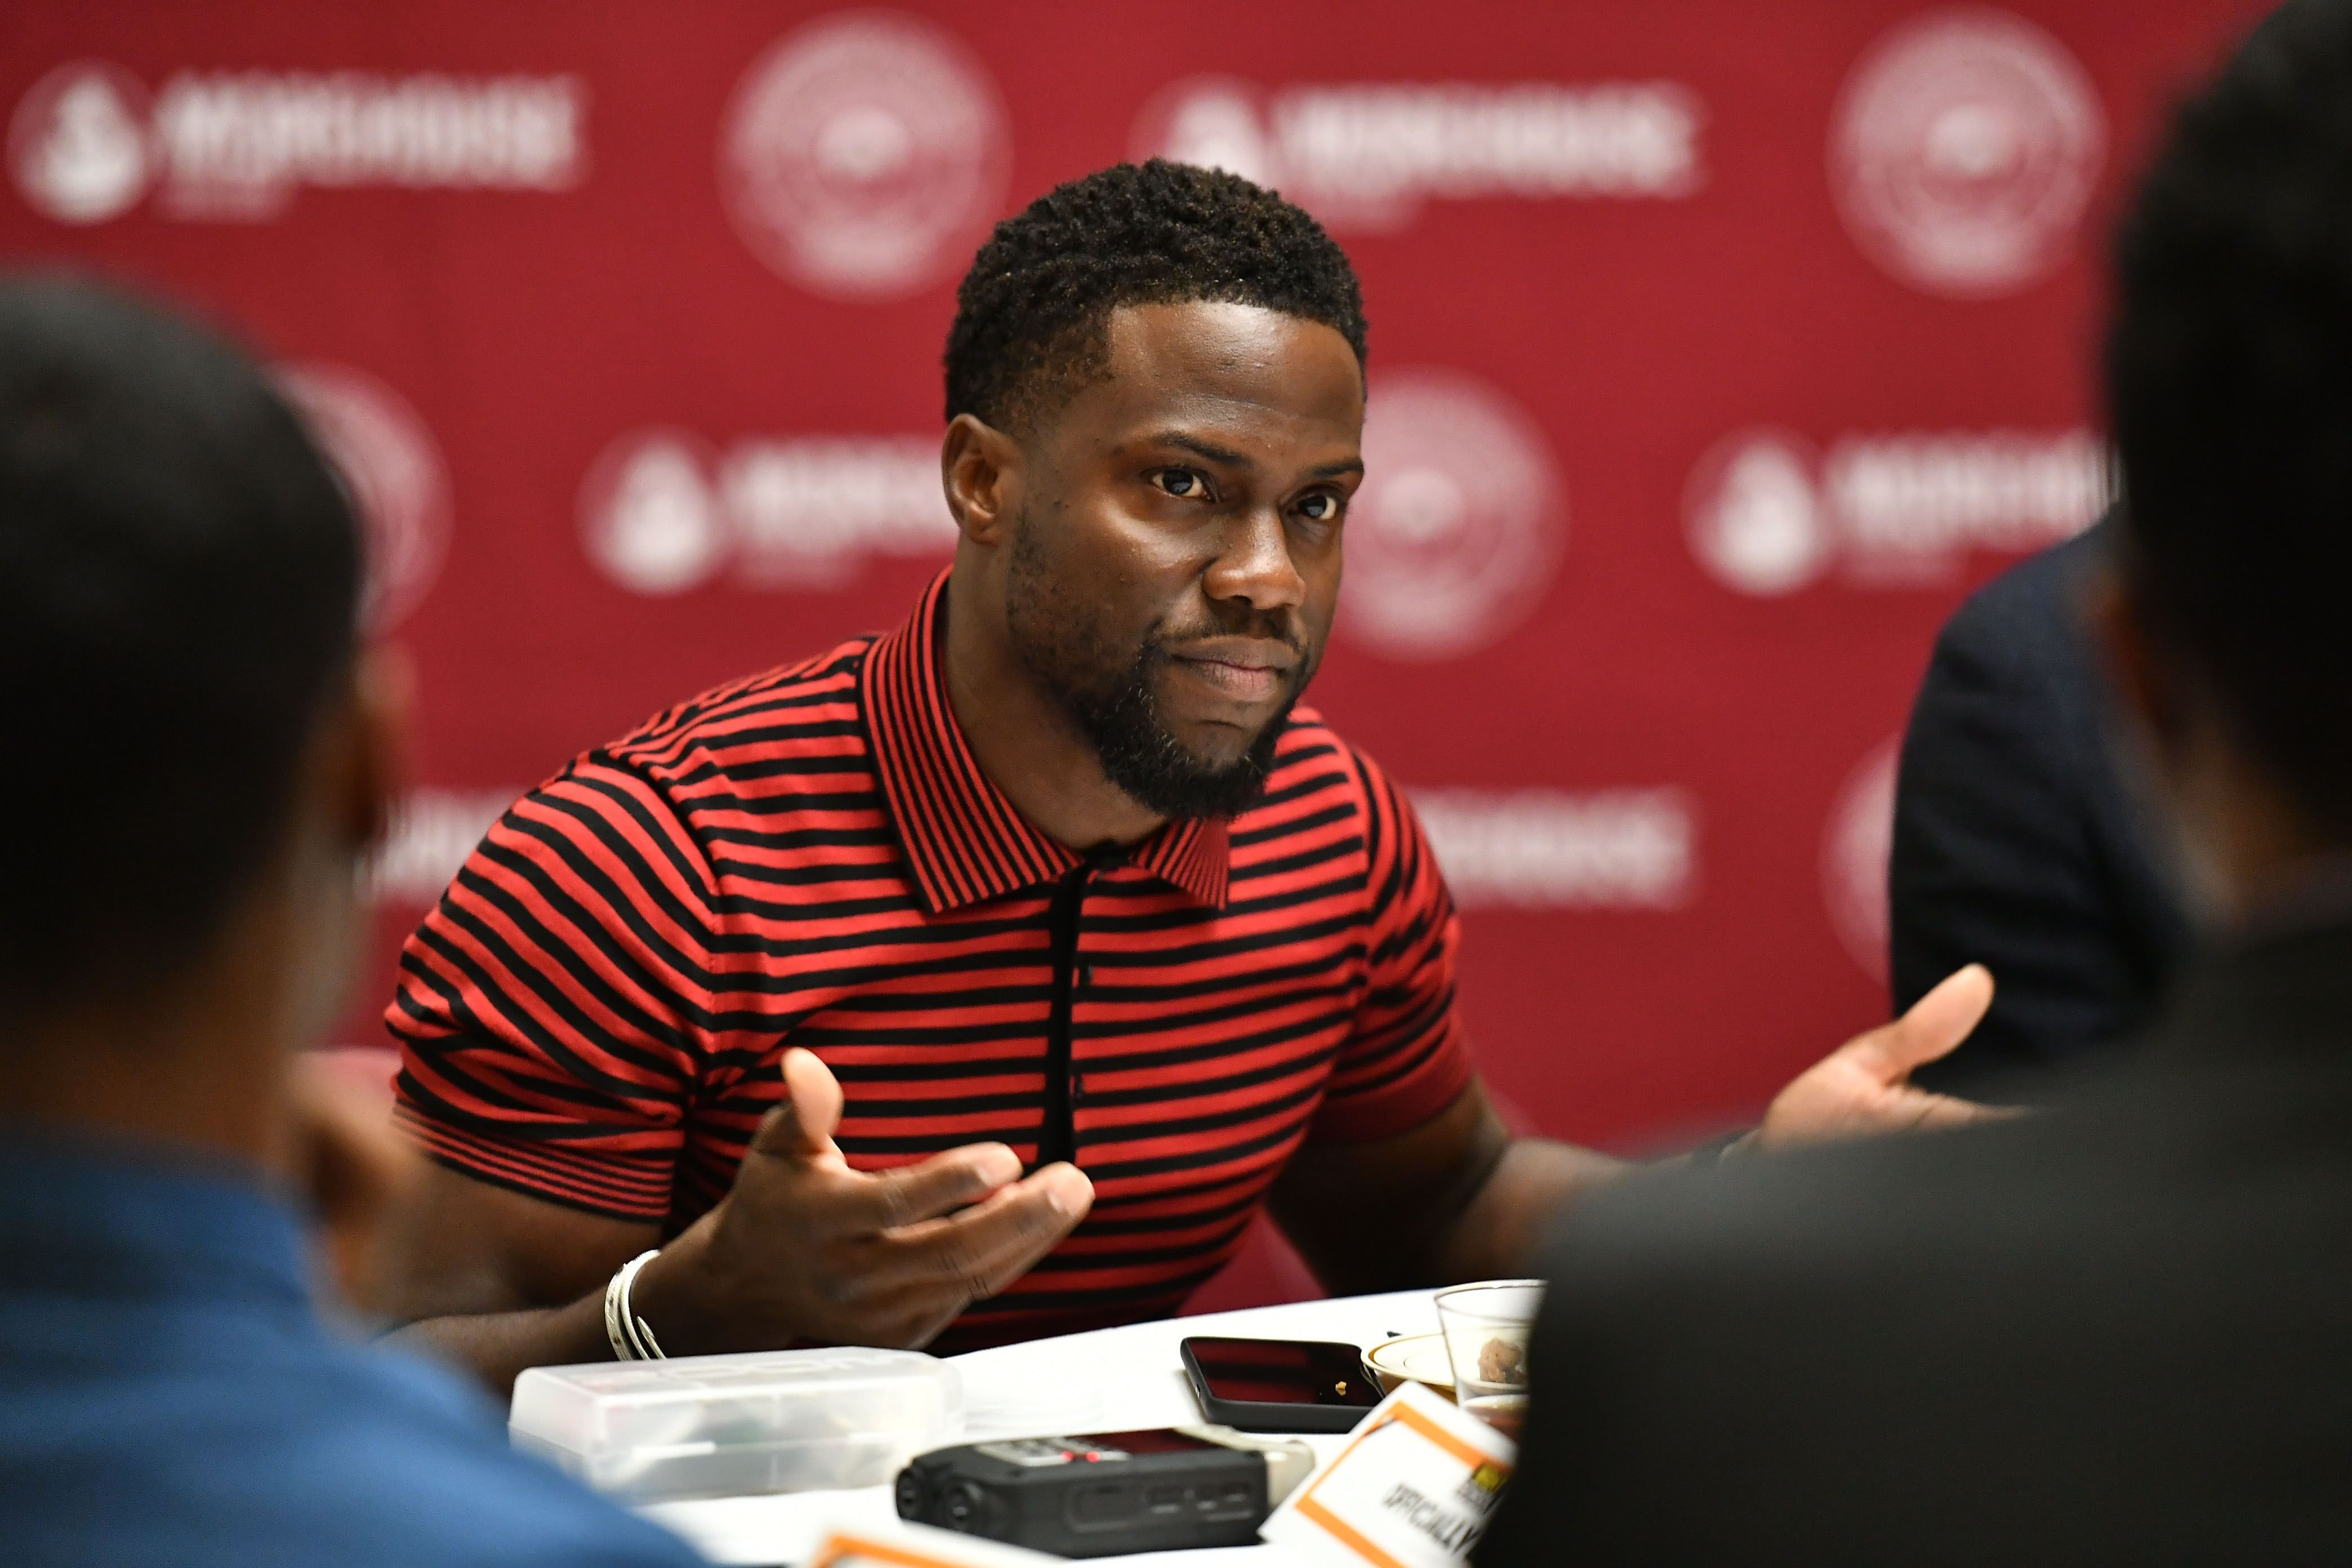 Kevin Hart at a speaking engagement | Source: Getty Images/GlobalImagesUkraine